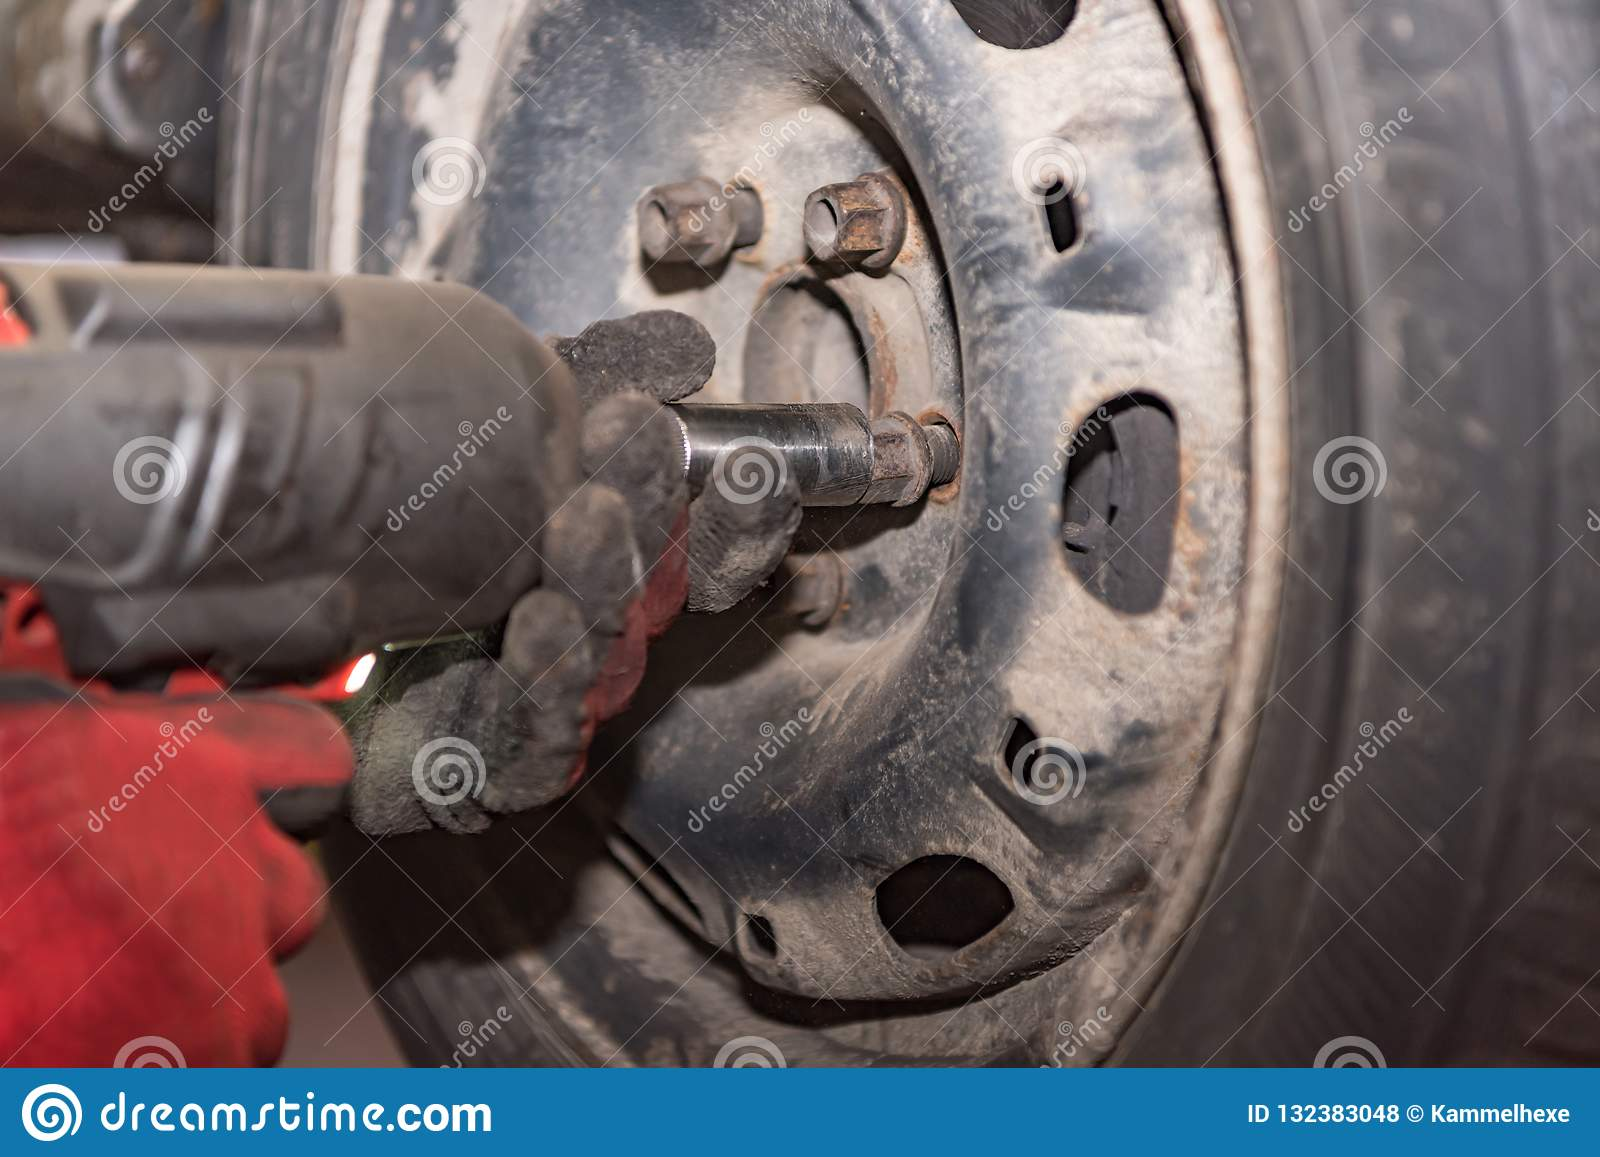 Mechatronics engineer changing the car tires